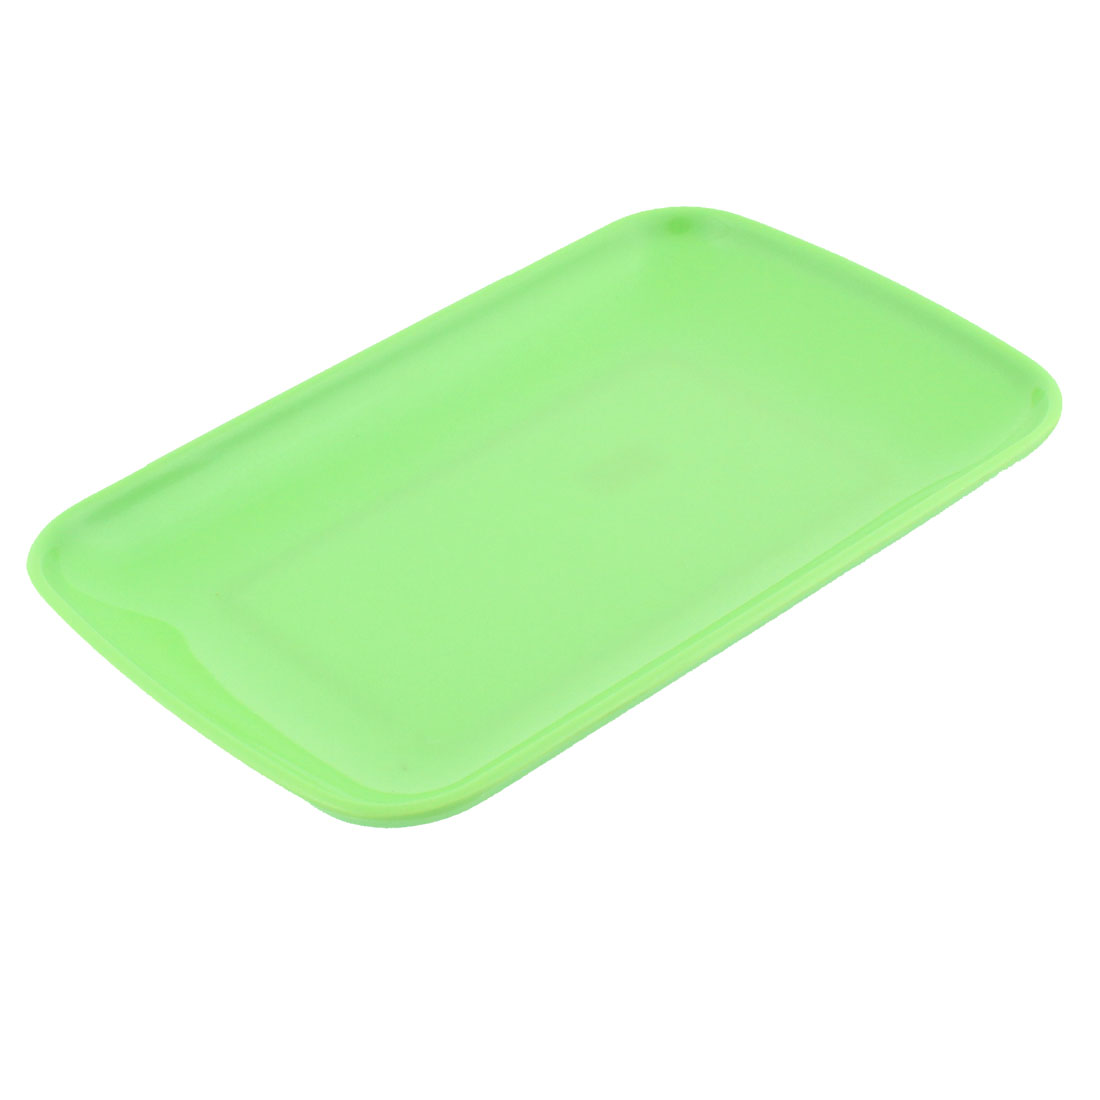 Plastic Rectangle Shape Dinner Dessert Vermicelli Plate Dish Green